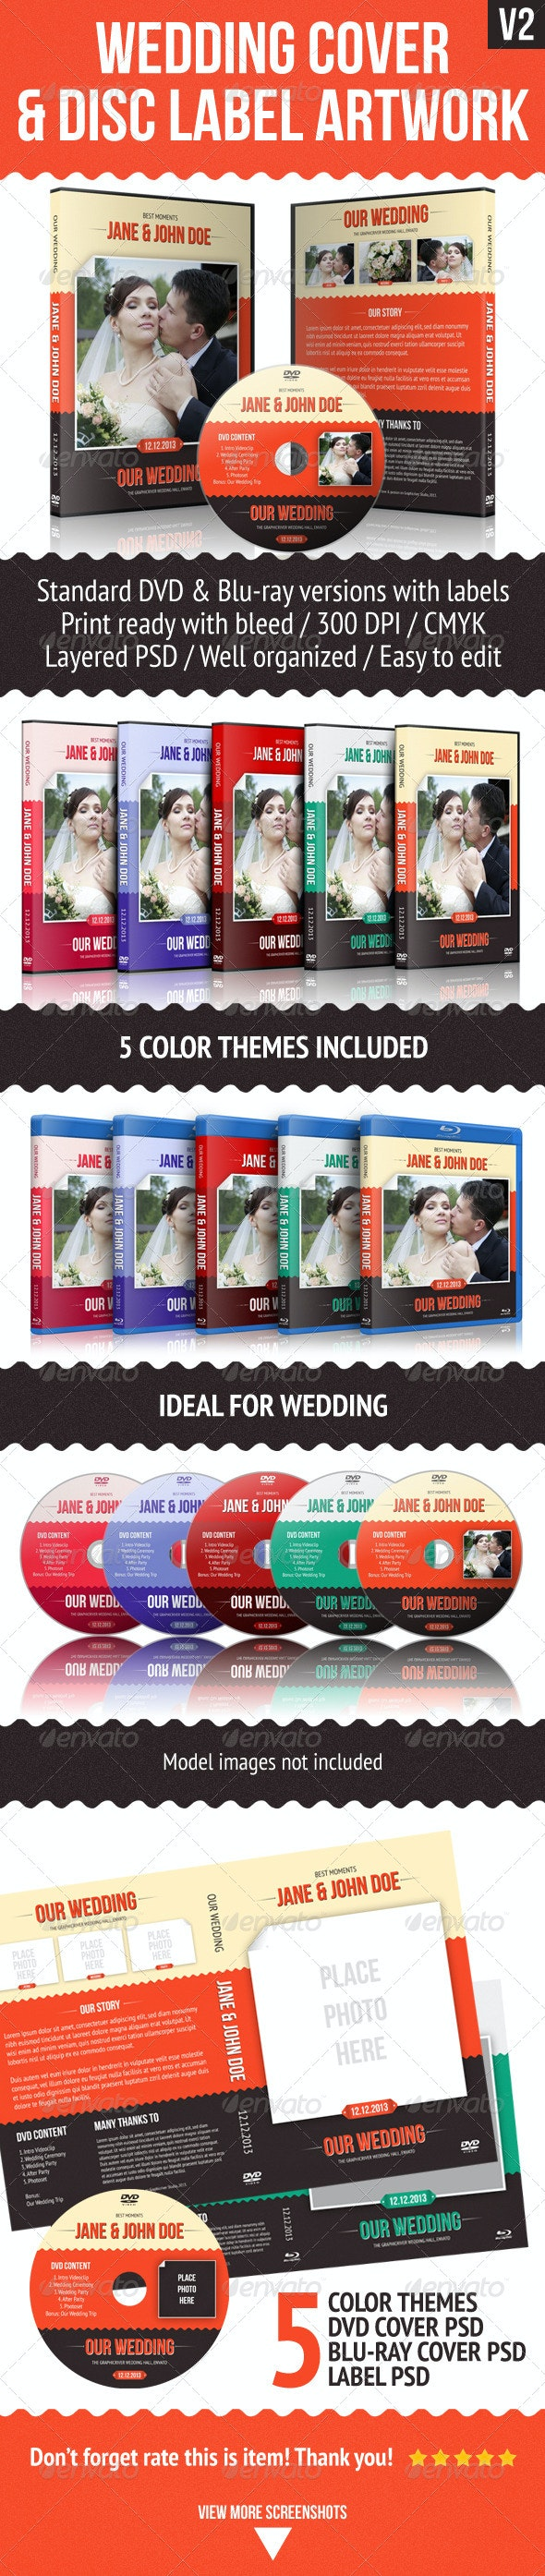 Wedding DVD Cover With Disc Label - CD & DVD Artwork Print Templates